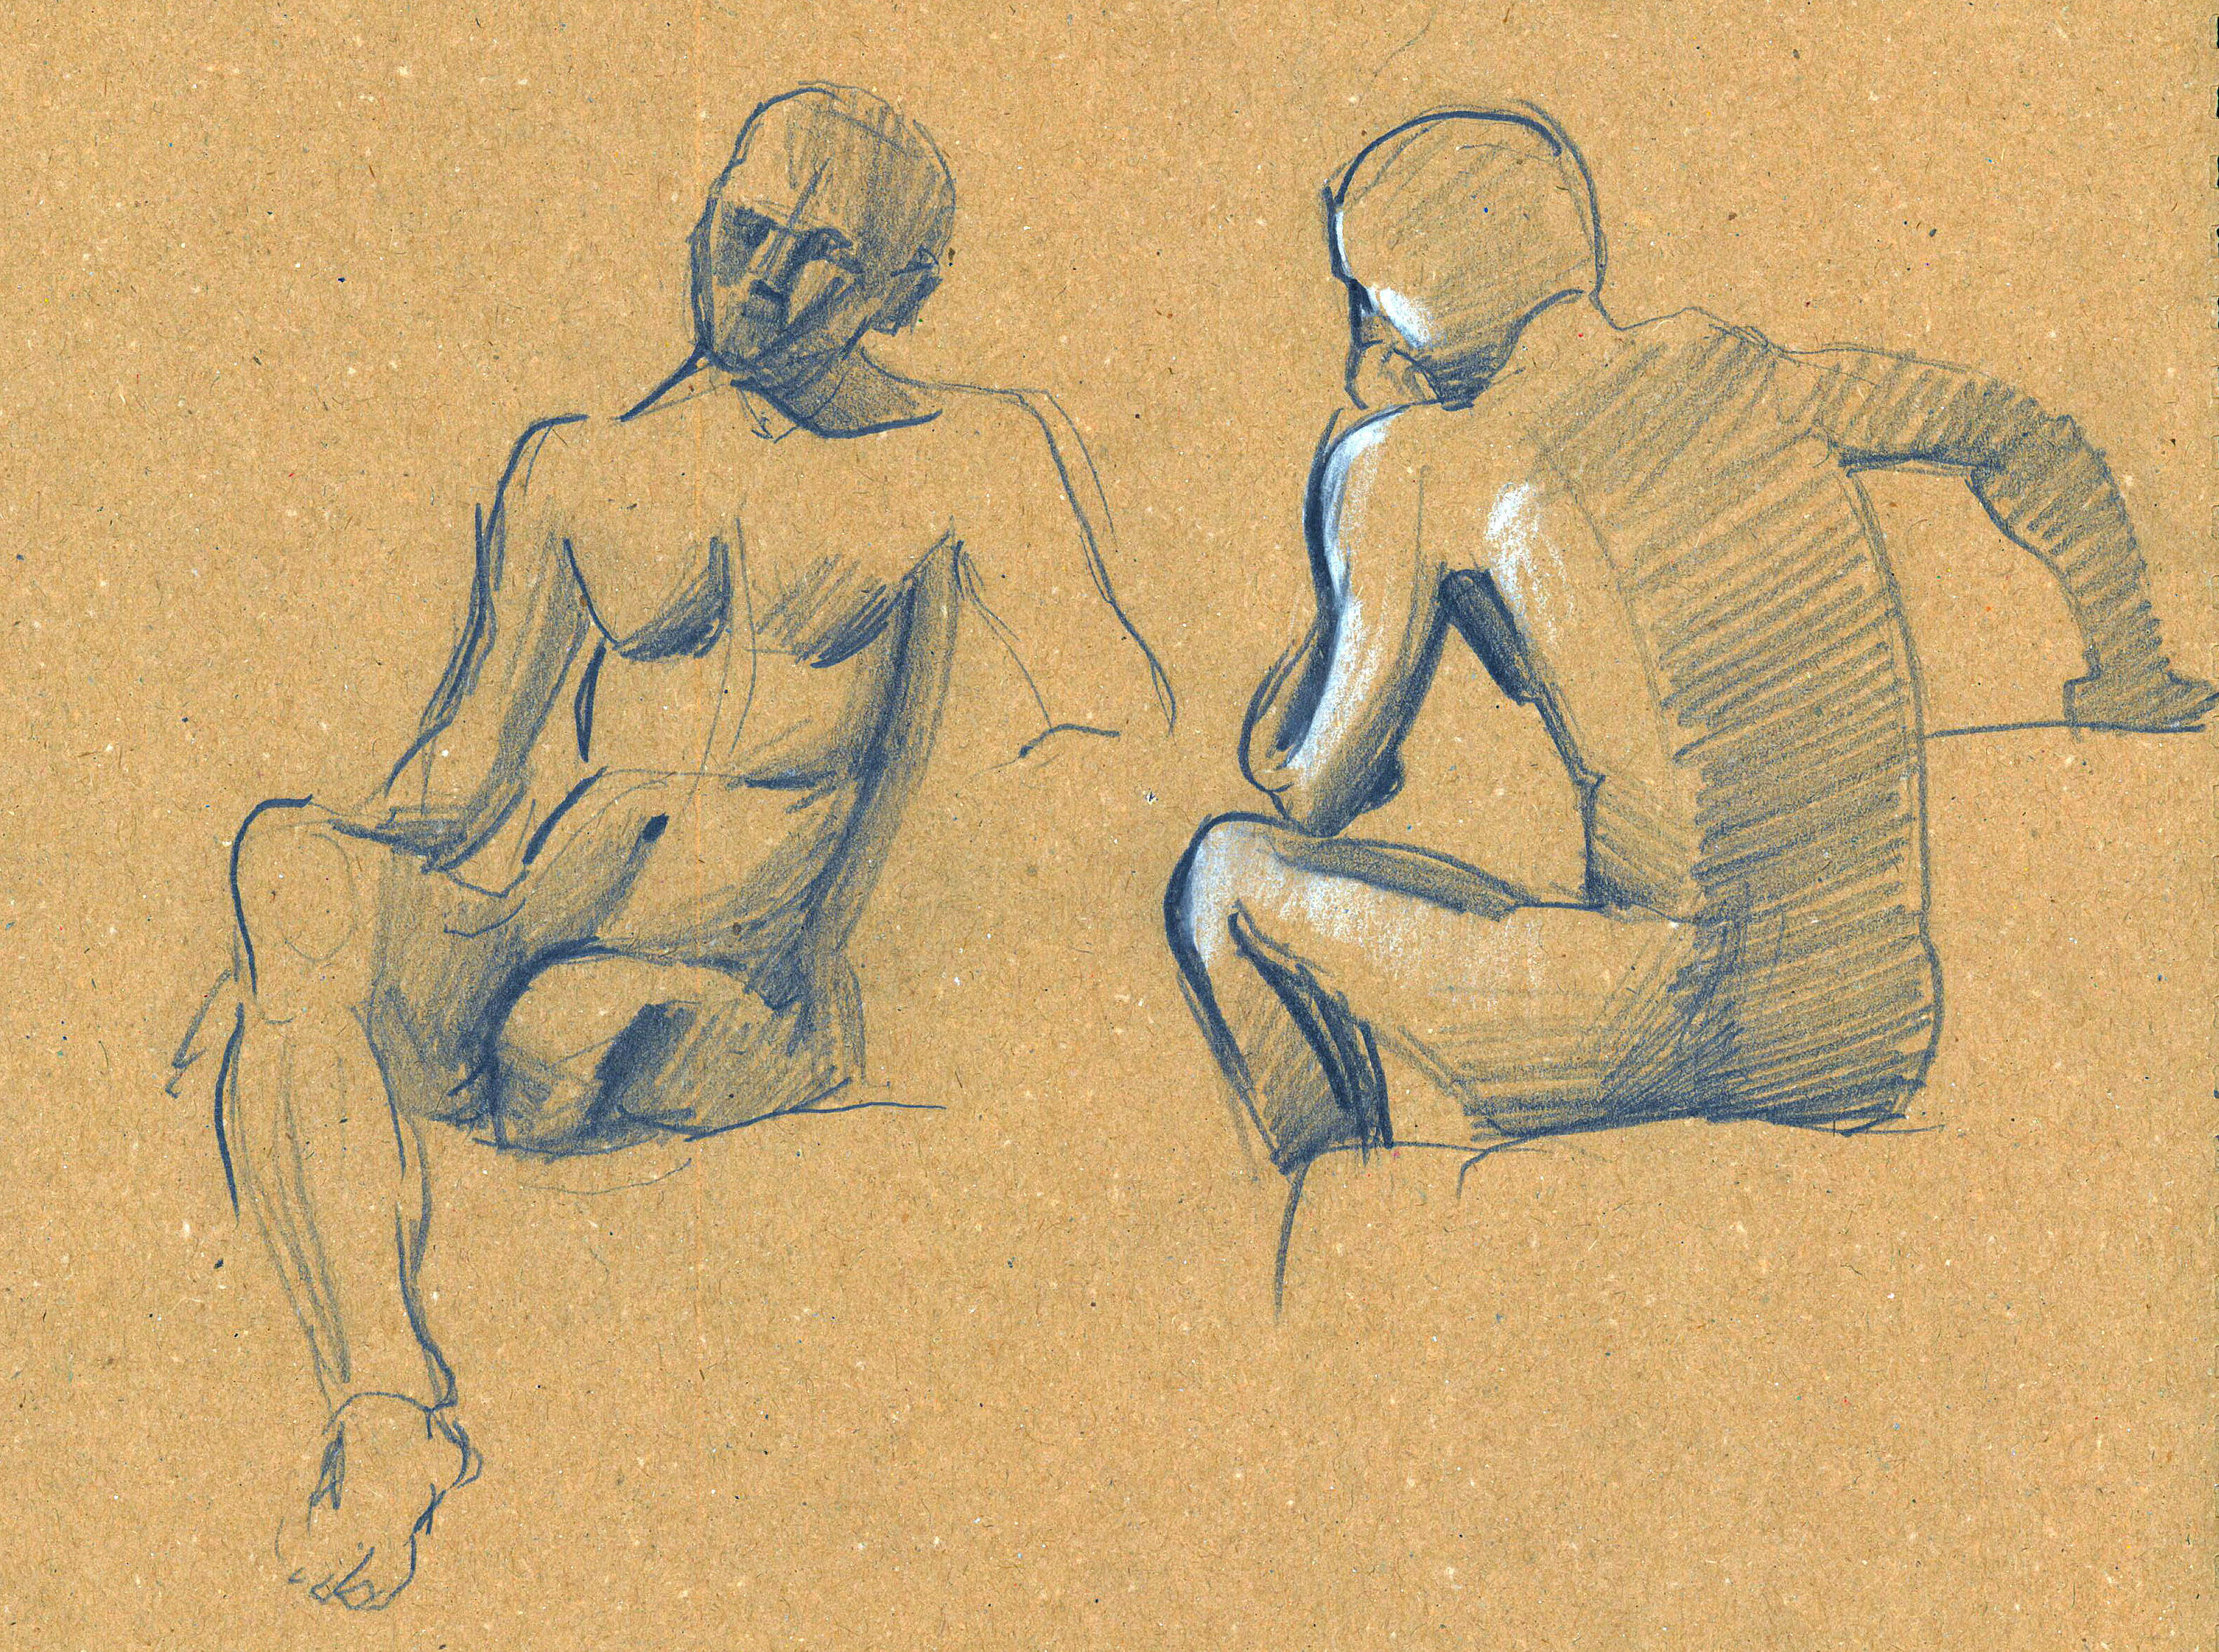 Human Body Sketches On Behance